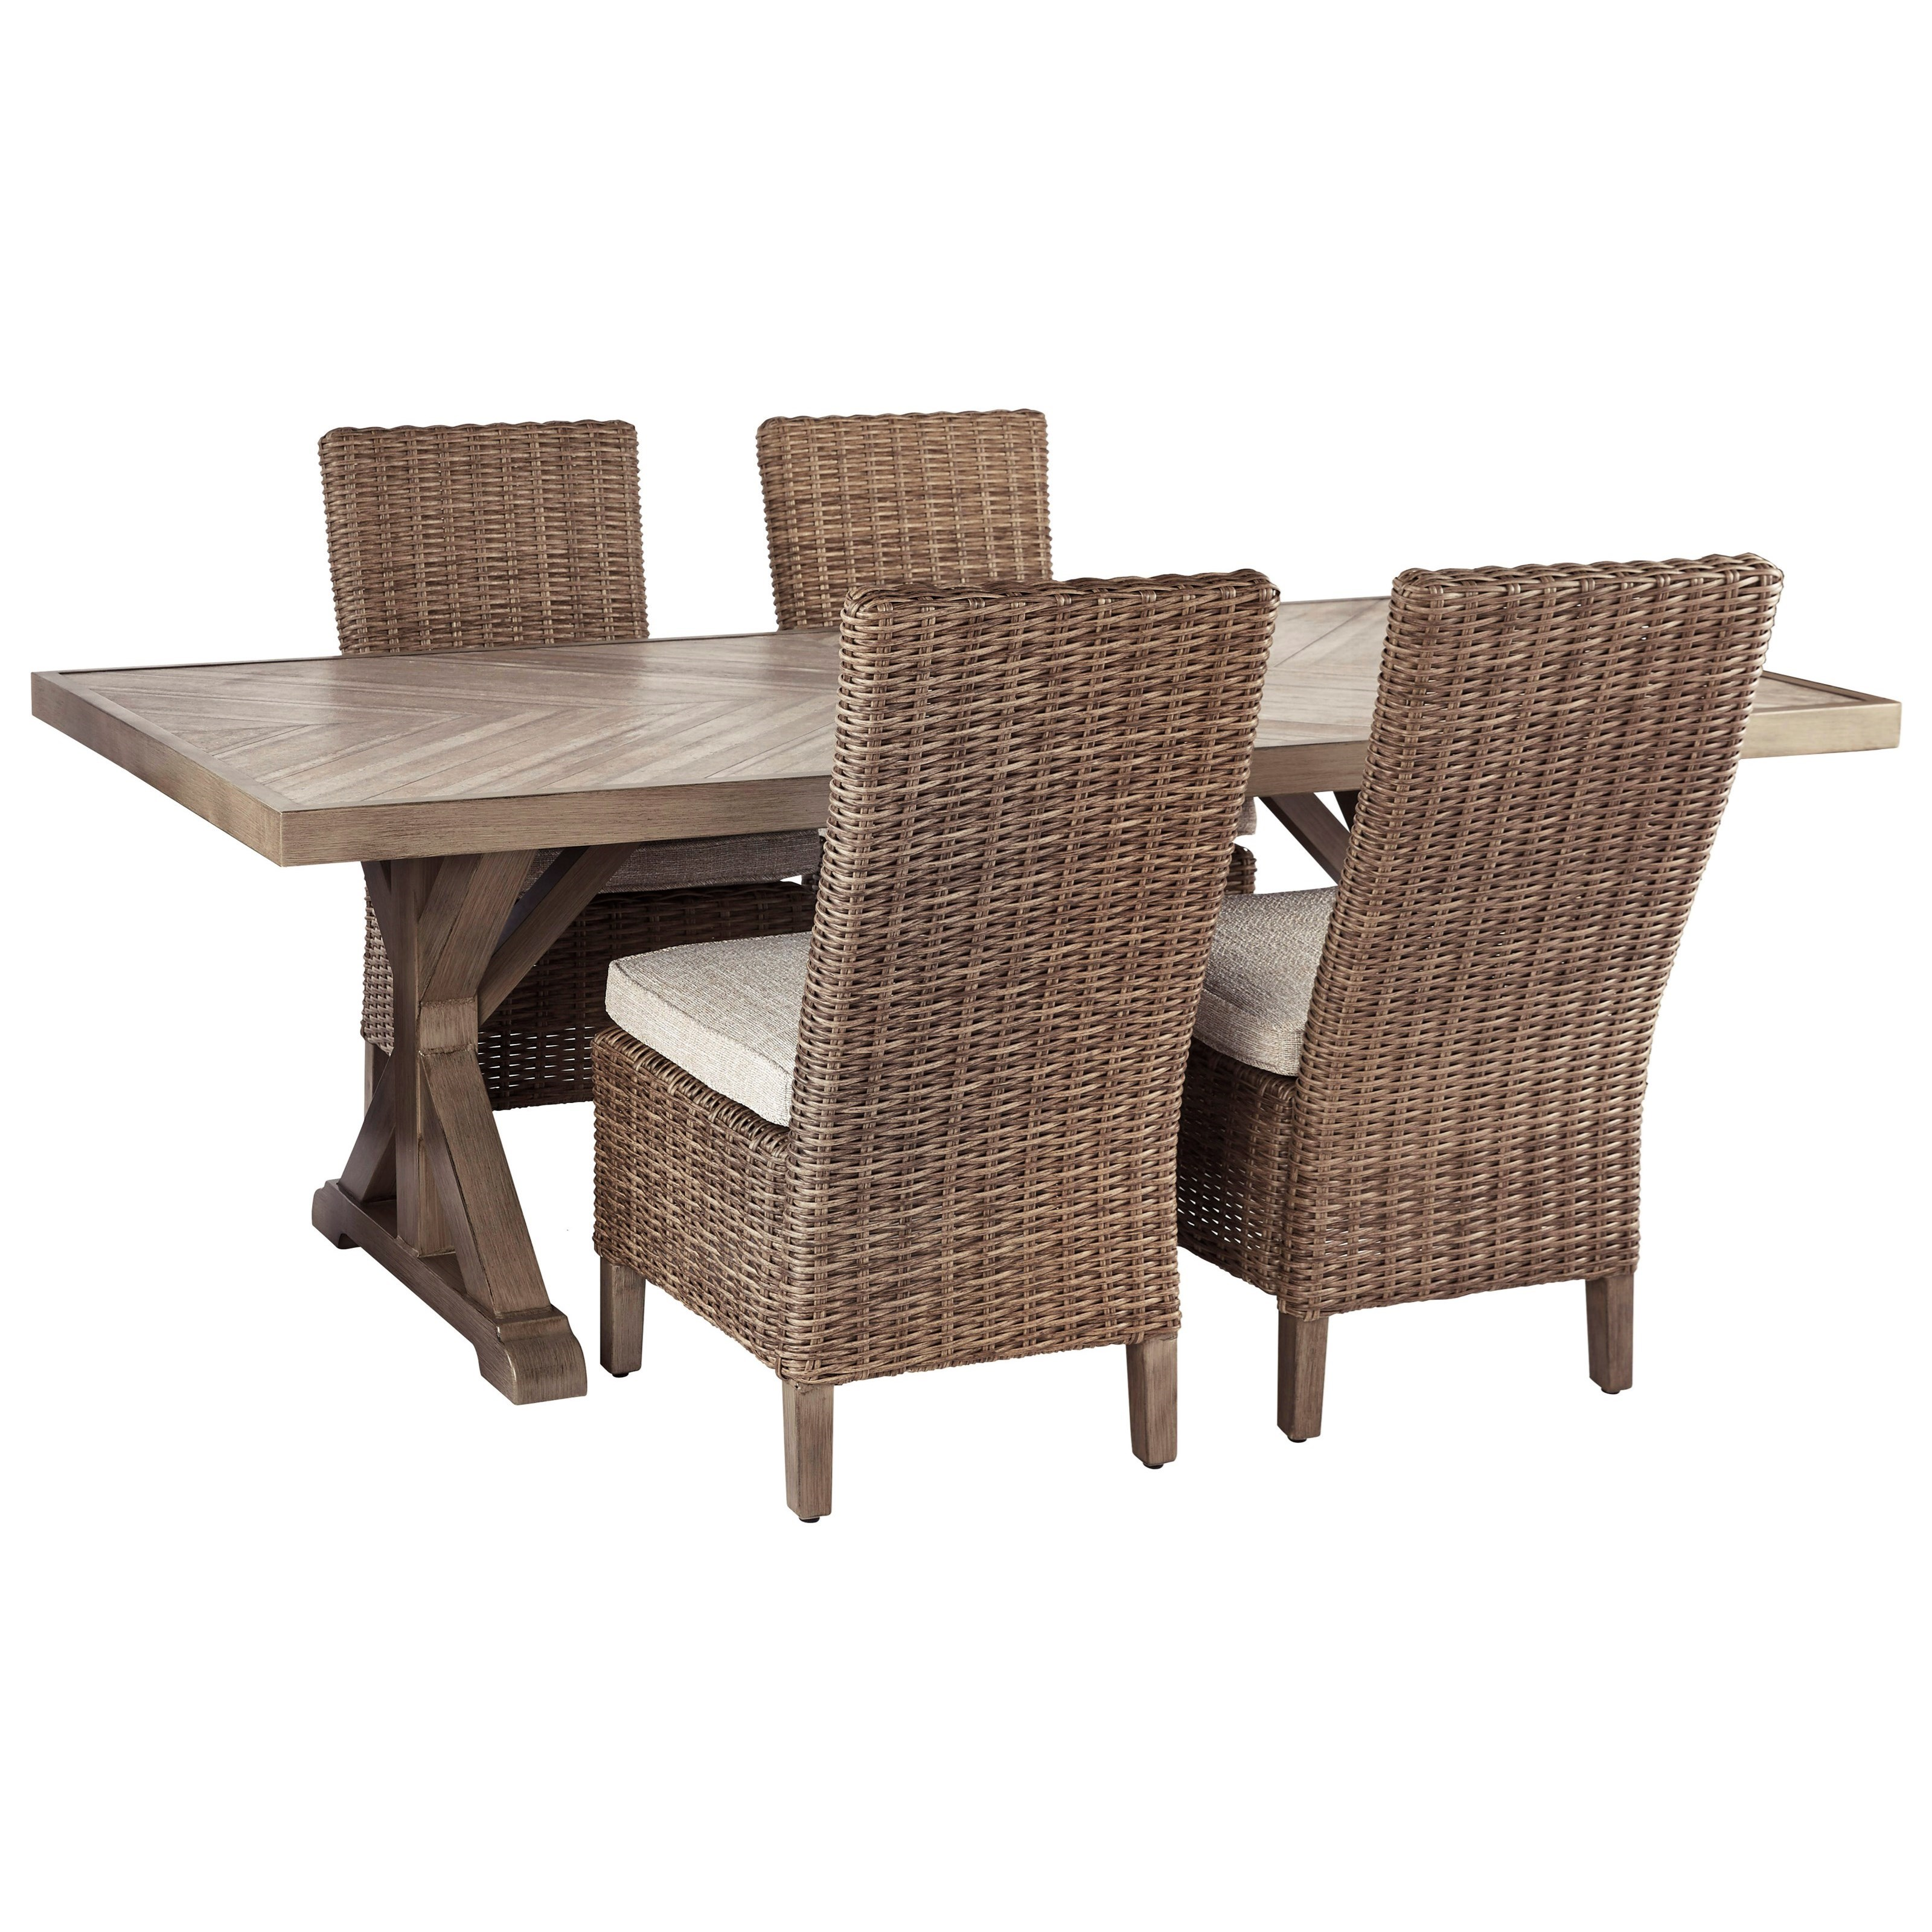 Beachcroft 5 Piece Outdoor Dining Set by Signature Design by Ashley at Standard Furniture